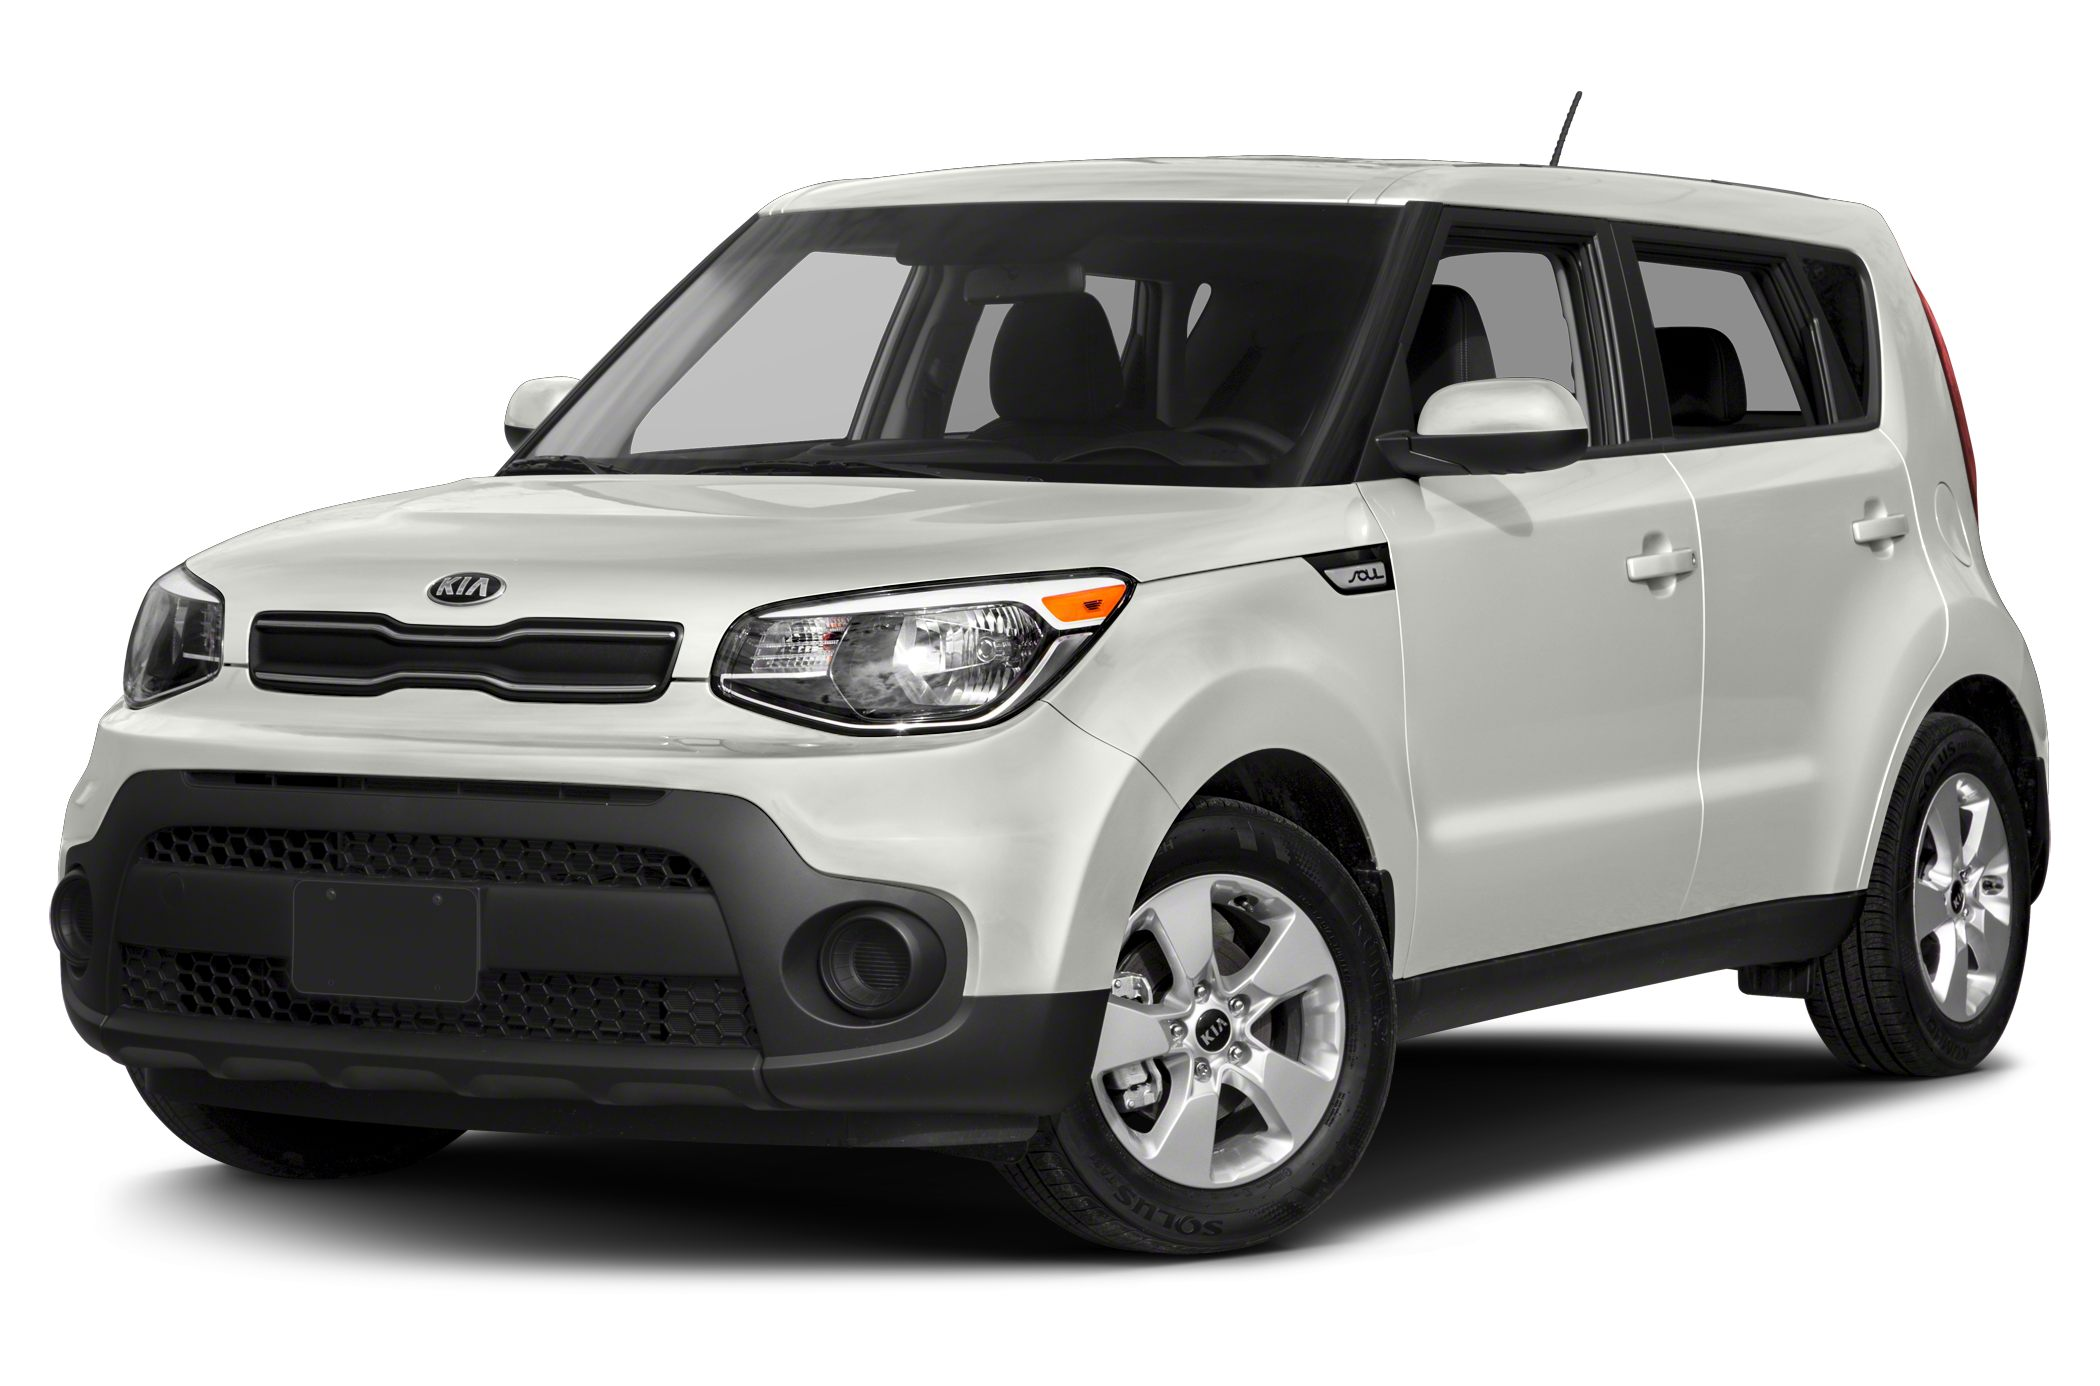 2014 Kia Soul gets new 'Totally Transformed' hamster ...